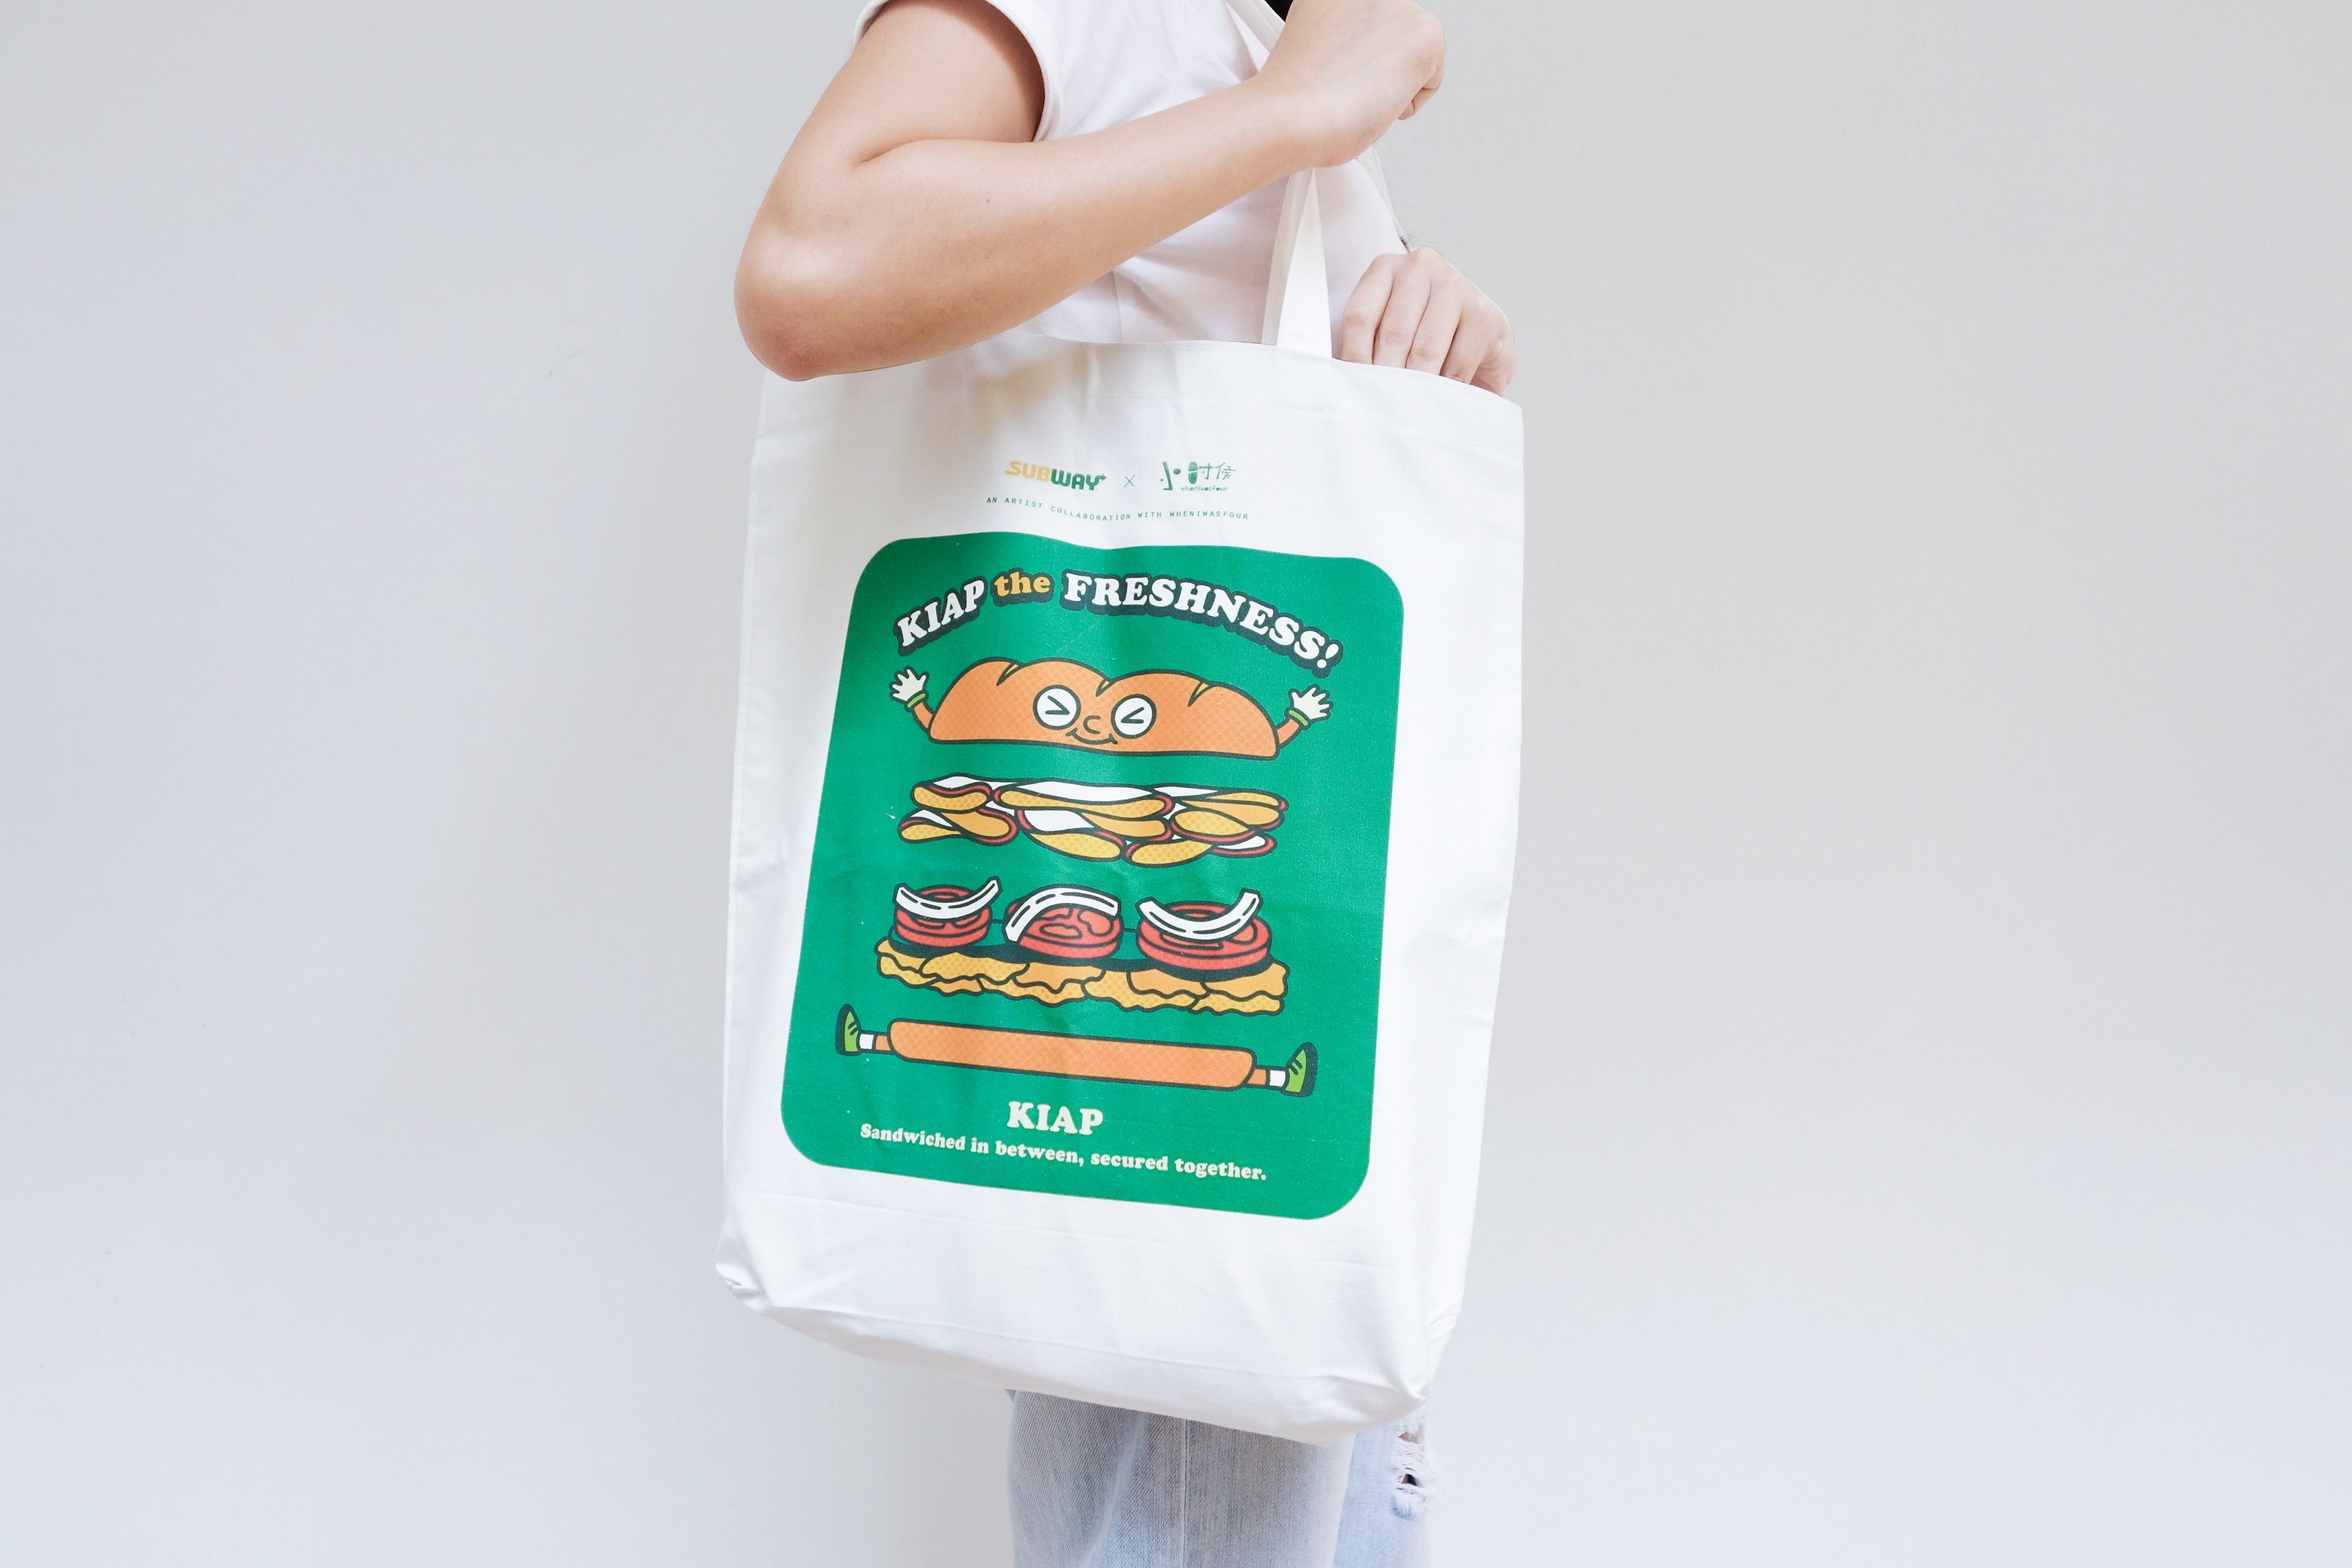 image of a person carrying a white tote bag with a print depicting a sandwich and a tagline being kiap the freshness